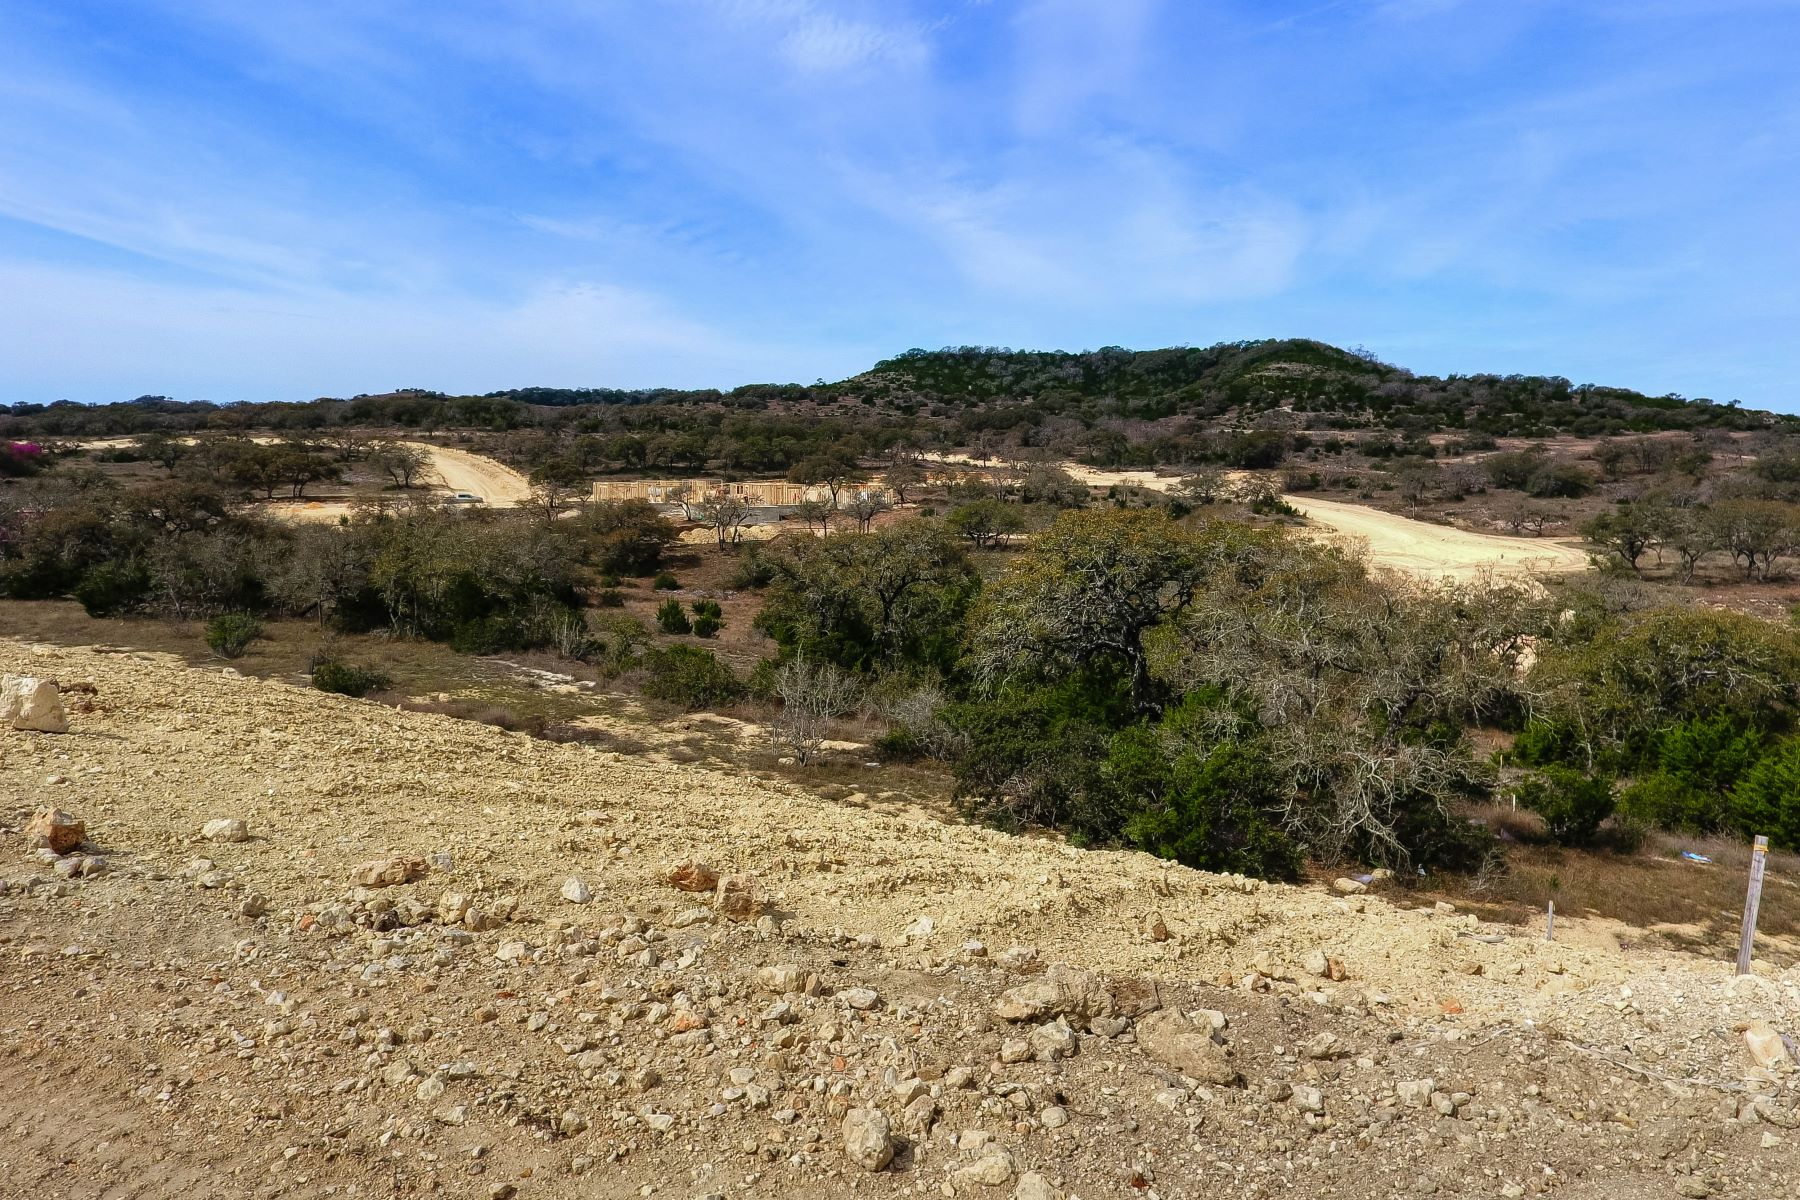 Land for Sale at Wonderful View in Desirable Canyons 23119 Casey Cyn, San Antonio, Texas, 78255 United States